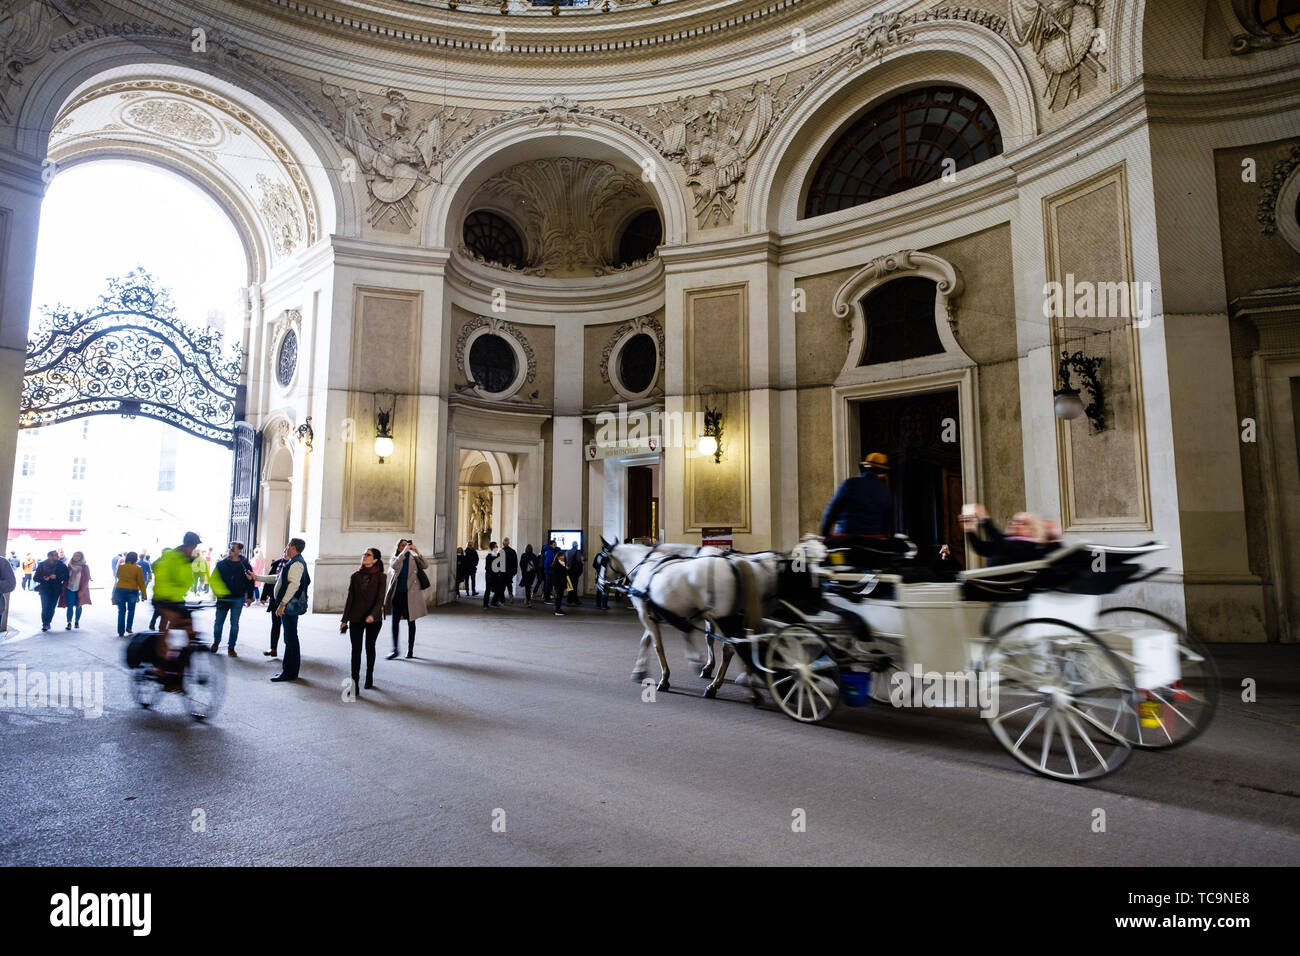 Tourists at The Hofburg on 03/11/2018 in Vienna. - Stock Image